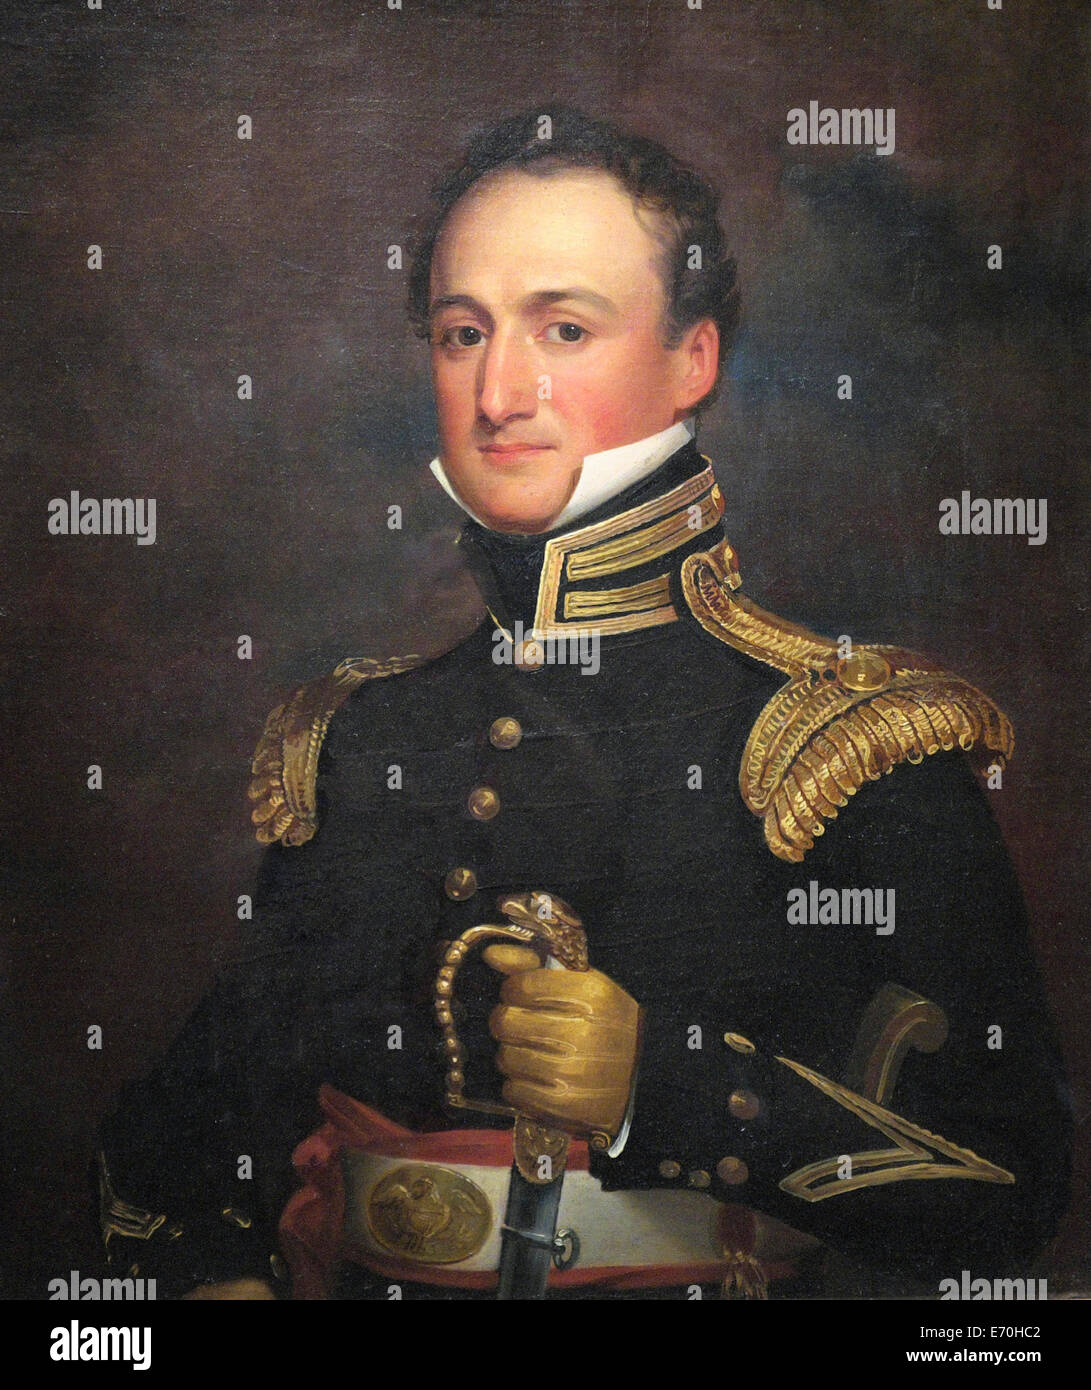 Constant Mathieu Eakin 1823 Graduated from West Point 1817 Assistant Professor of Engineering Stock Photo